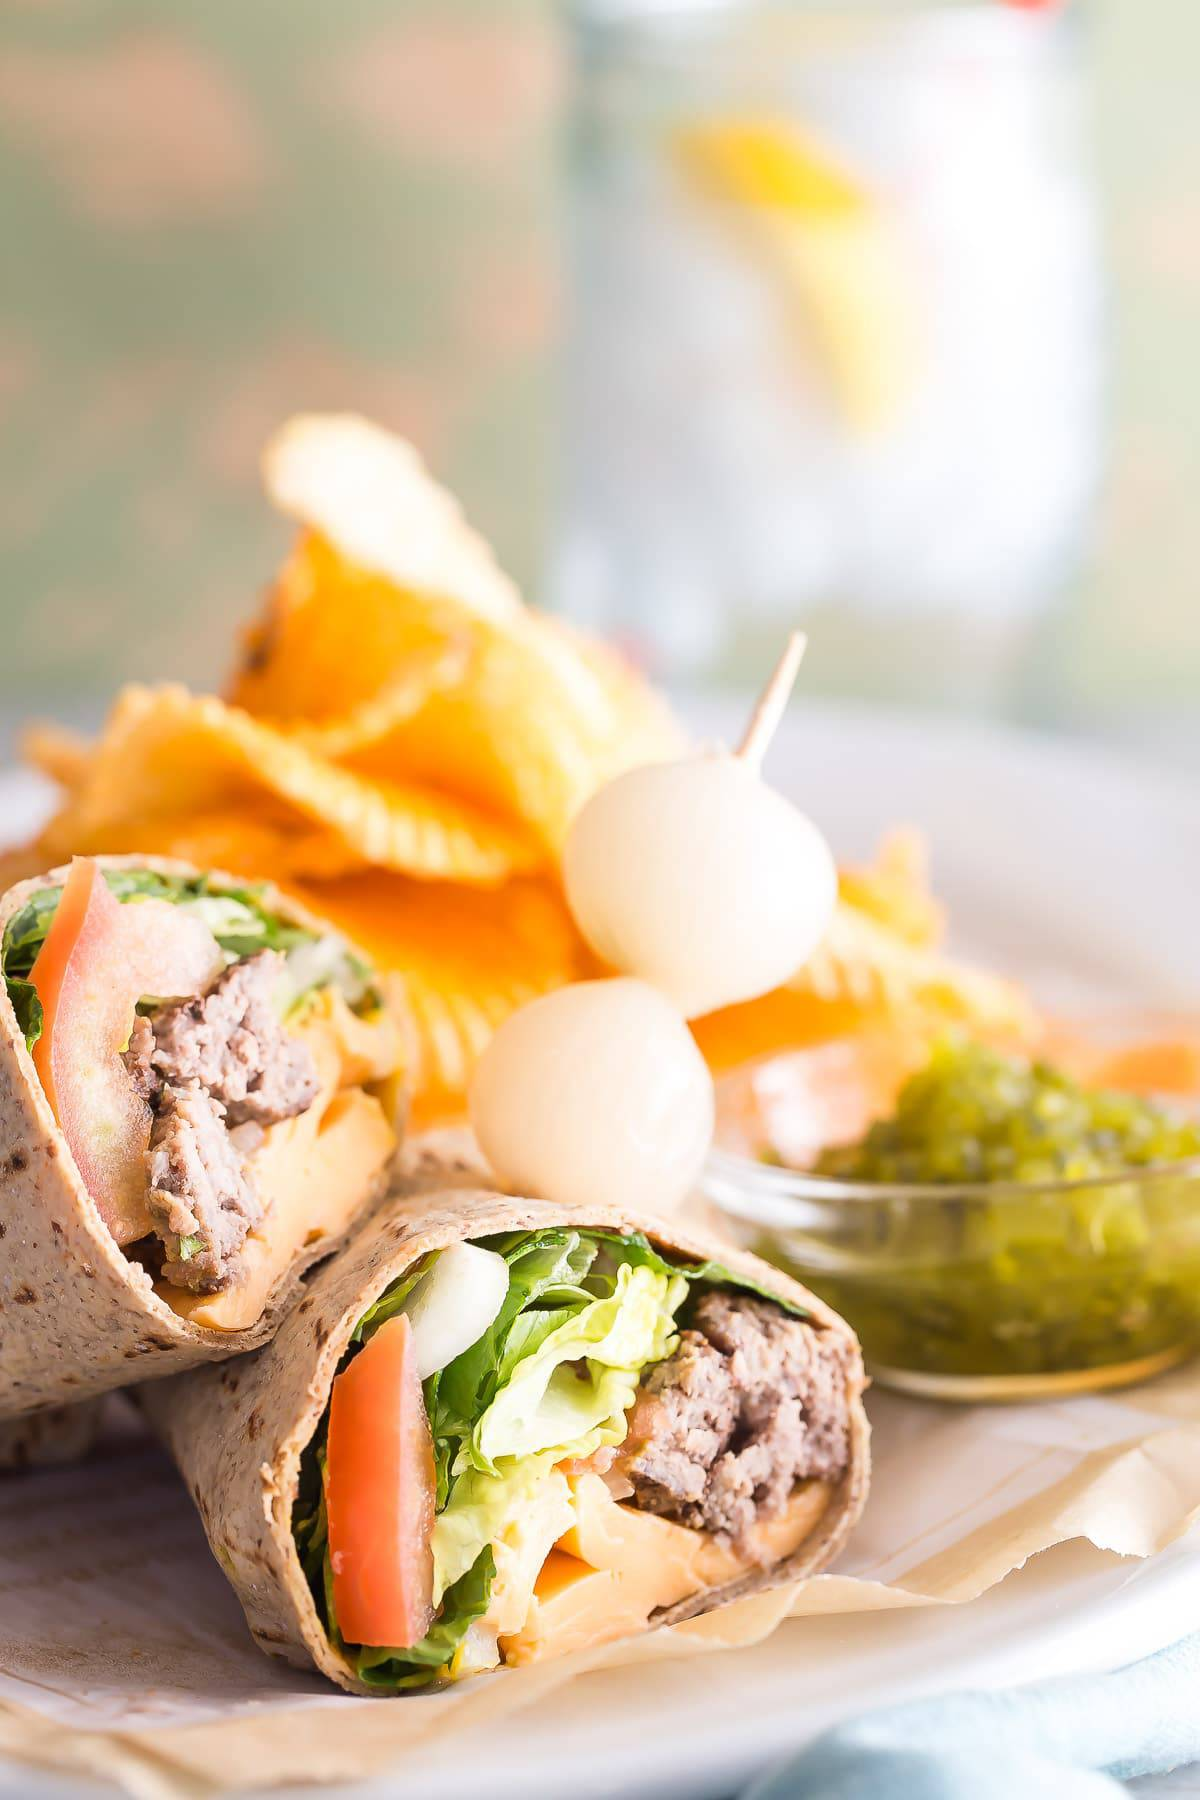 Skip the bun and use a wrap to make this easy cheeseburger sandwich wrap.